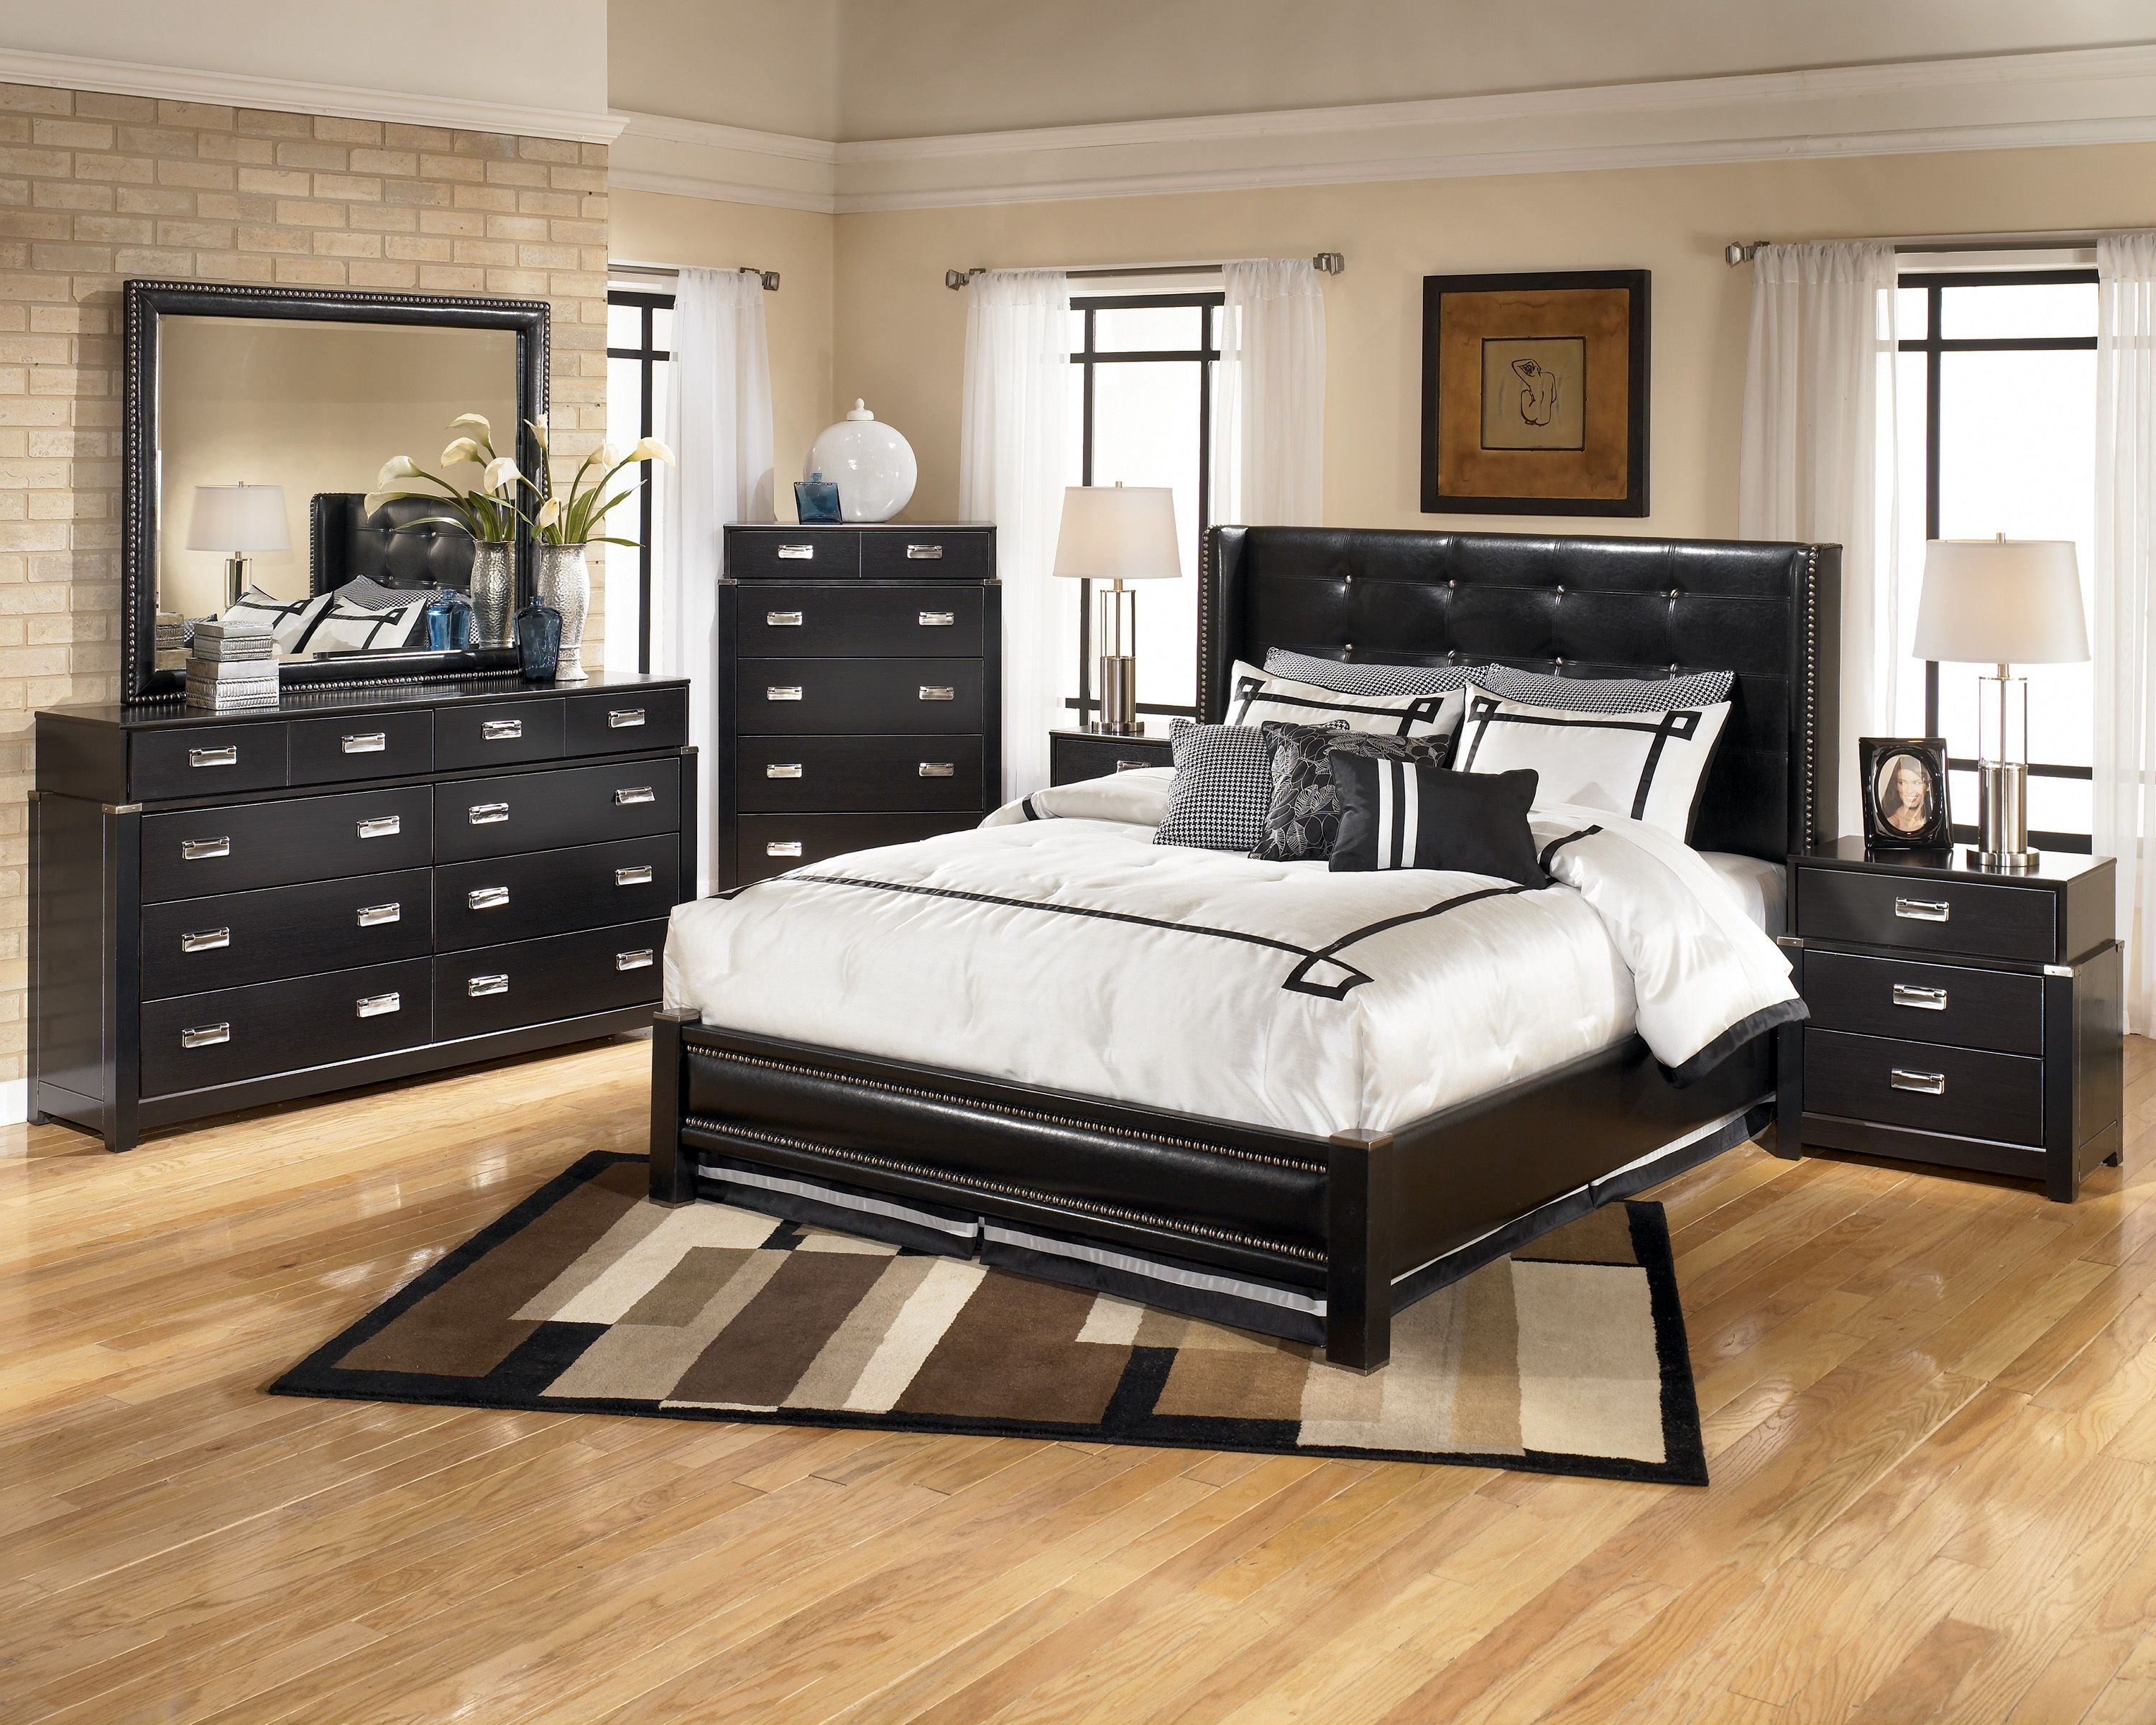 Best 7 Best Place To Buy Cheap Bedroom Furniture Facefabskin Com With Pictures